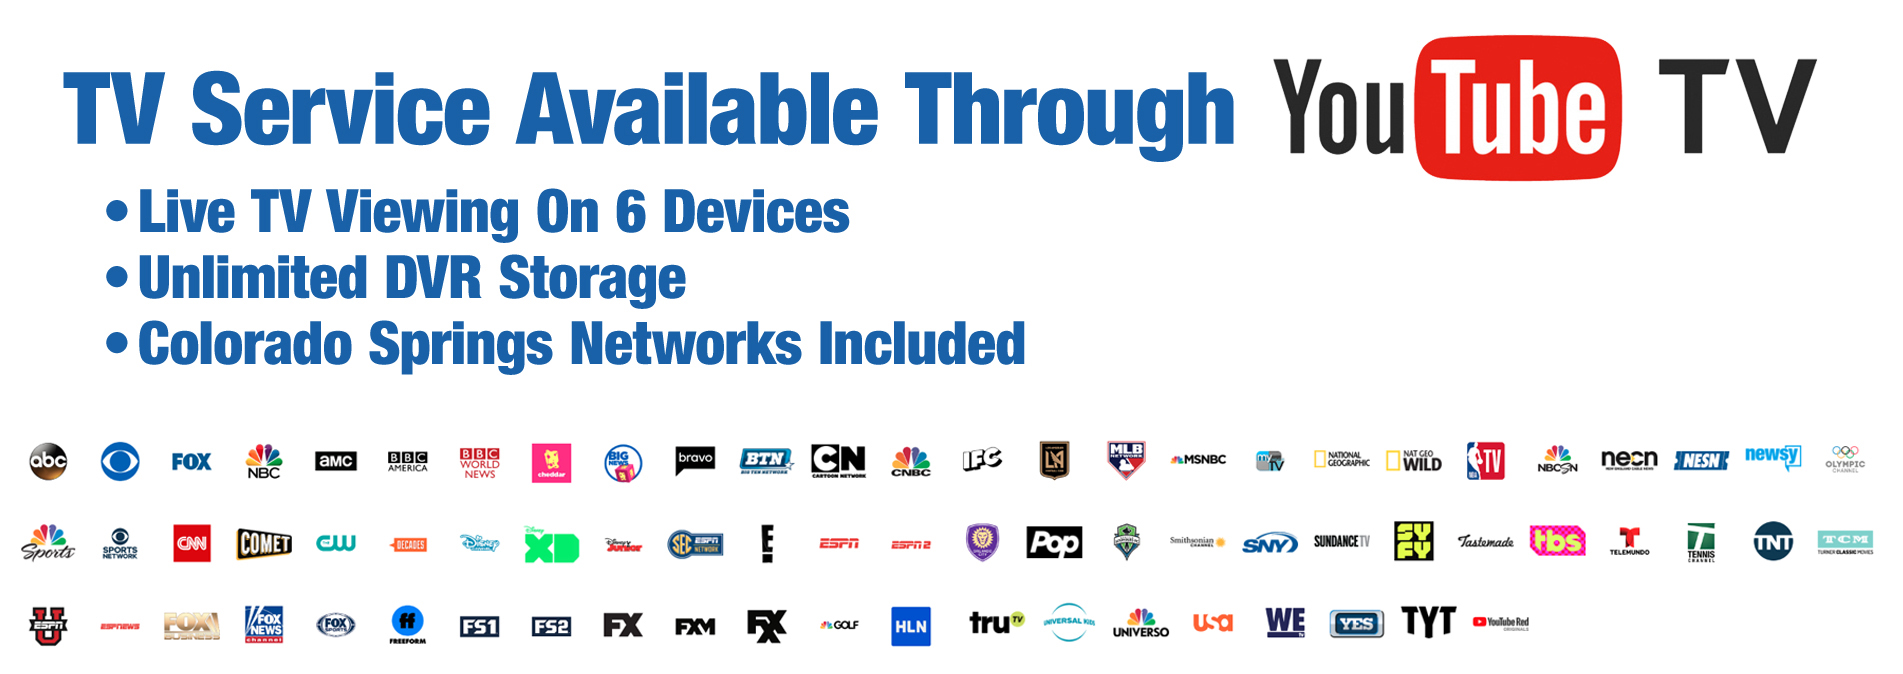 Watch Live TV on up to 6 Devices with Unlimited Cloud DVR and Colorado Springs Local Networks.